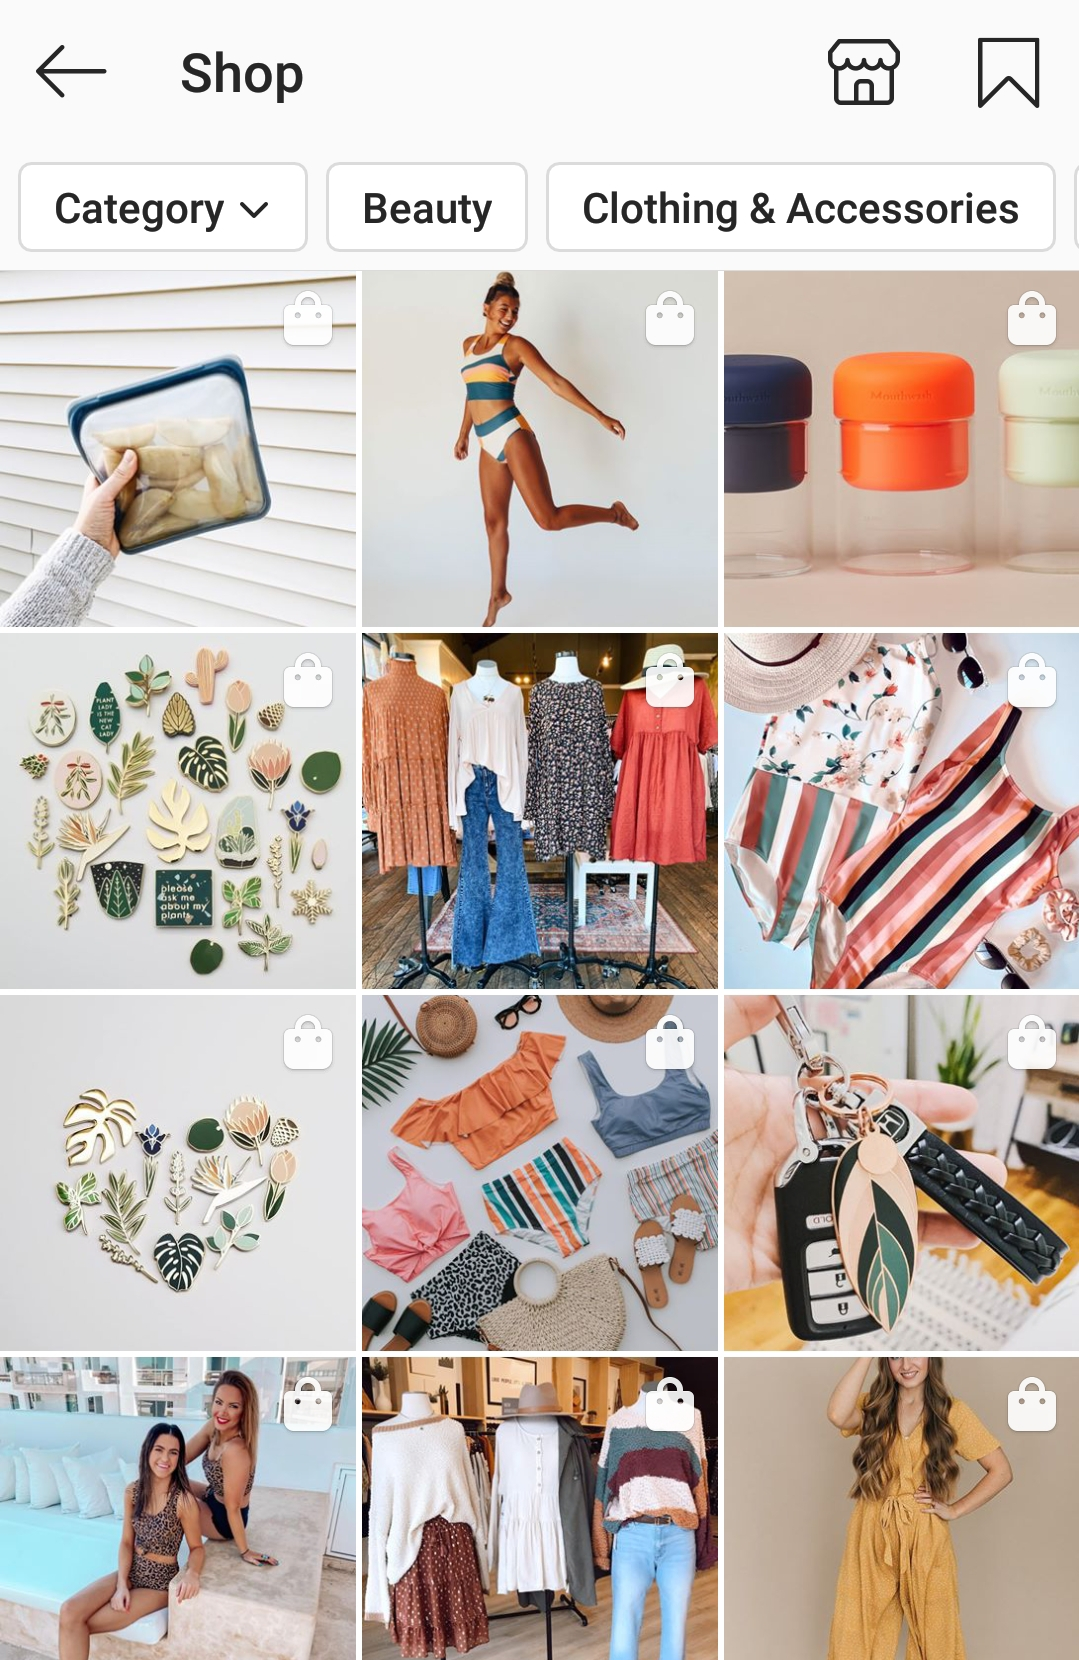 Instagram social shopping ecommerce